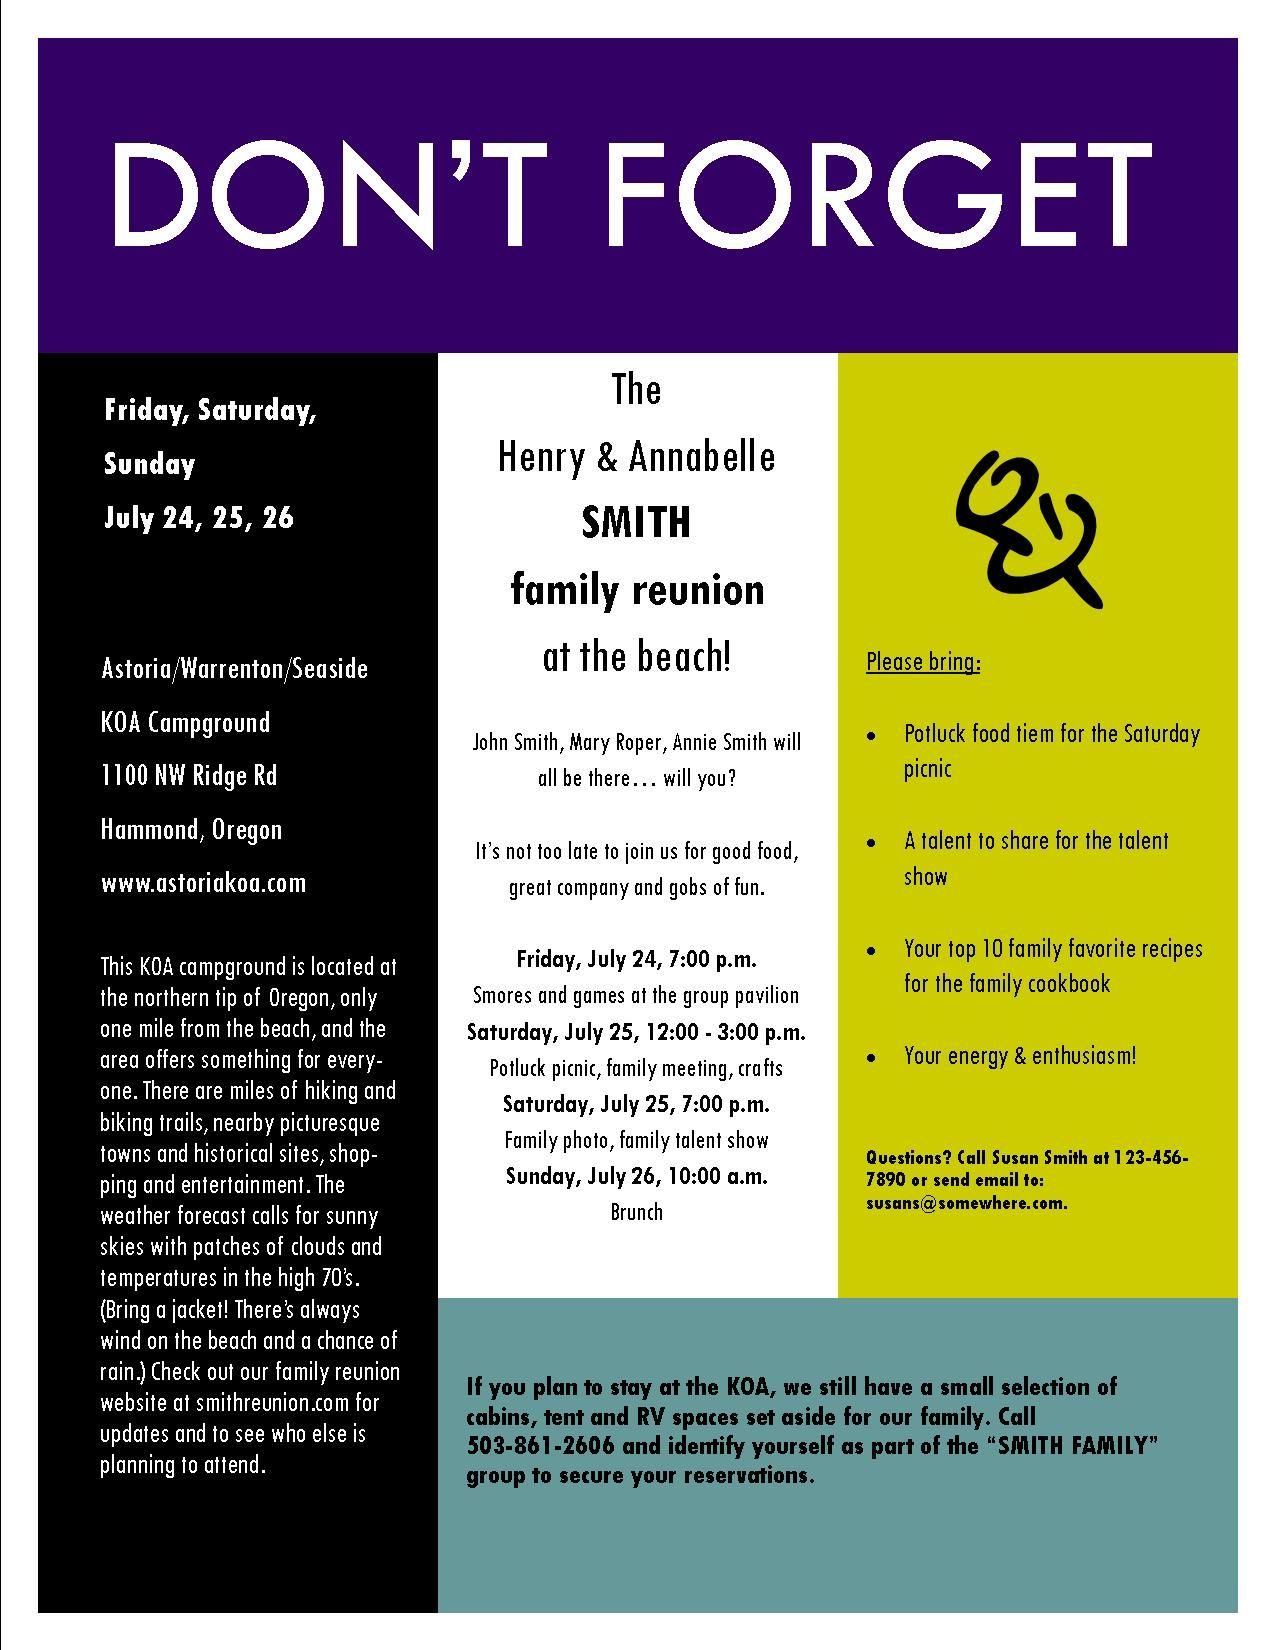 Sample family reunion invitation flyer ideas for family reunions class reunion invitation wording reunion wording ideas college graduate sample resume examples of a good essay introduction dental hygiene cover letter stopboris Image collections